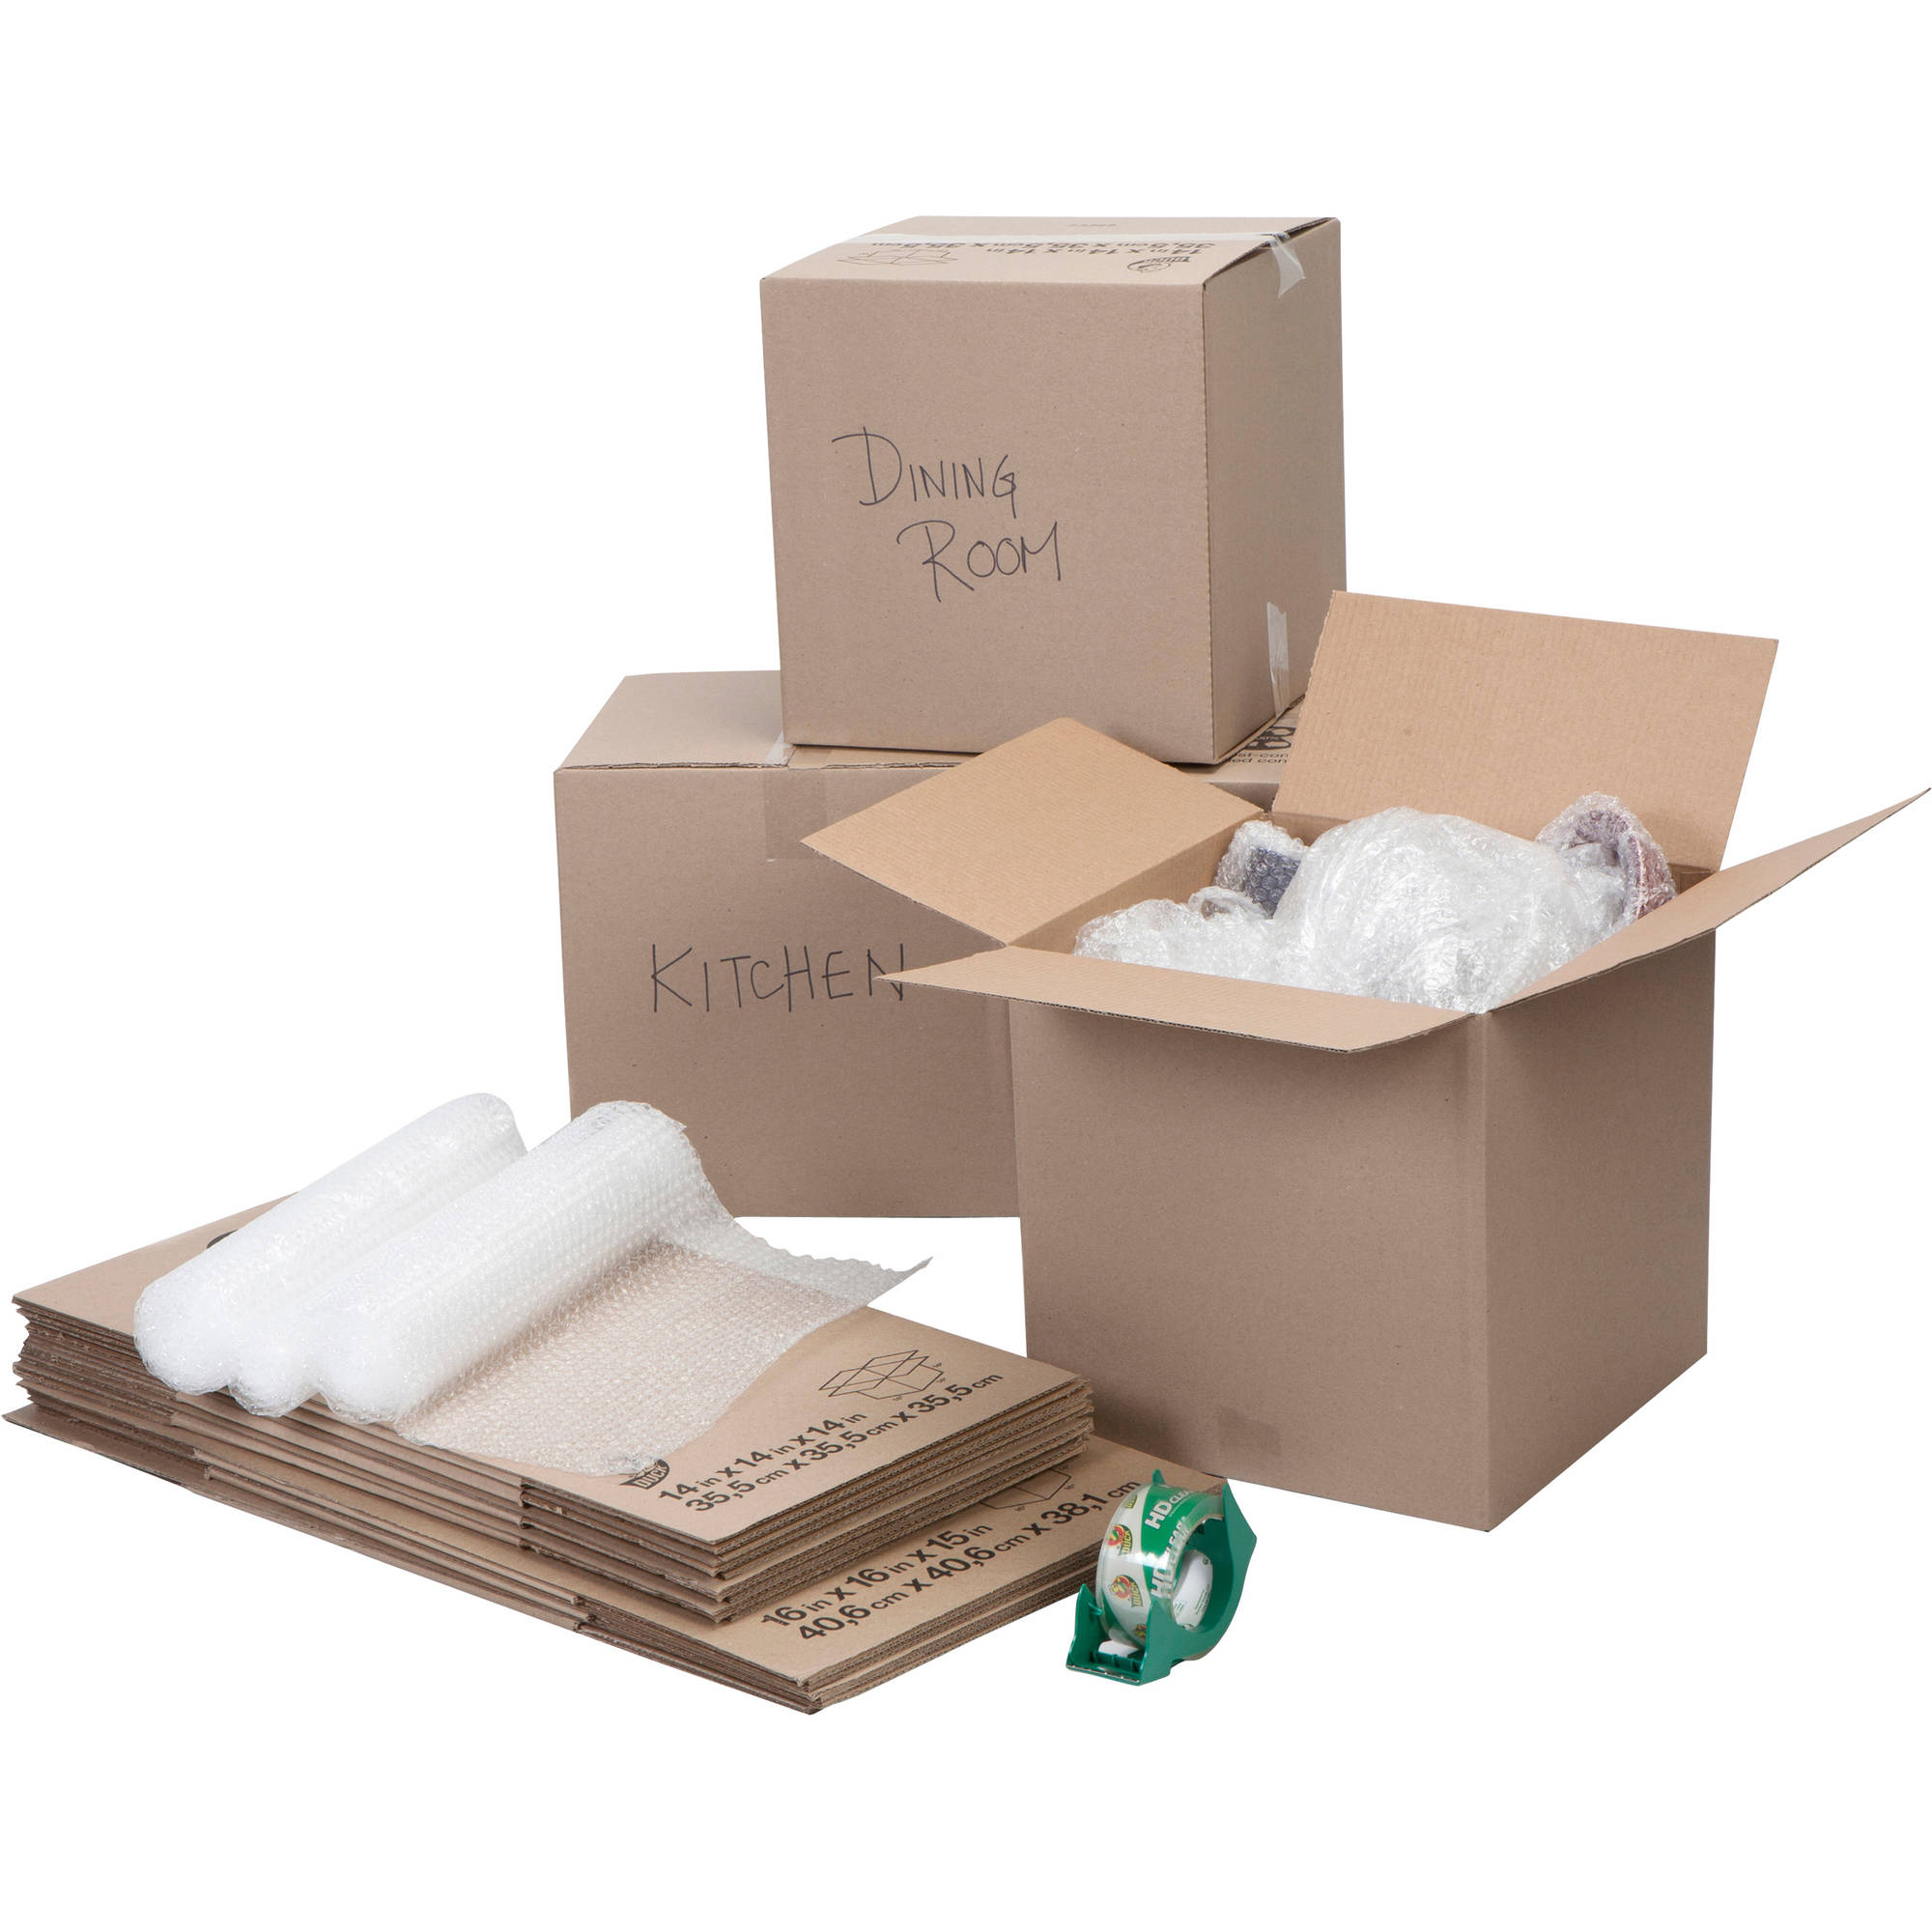 Duck Brand Moving Kit includes Bubble Wrap, Boxes and Packing Tape